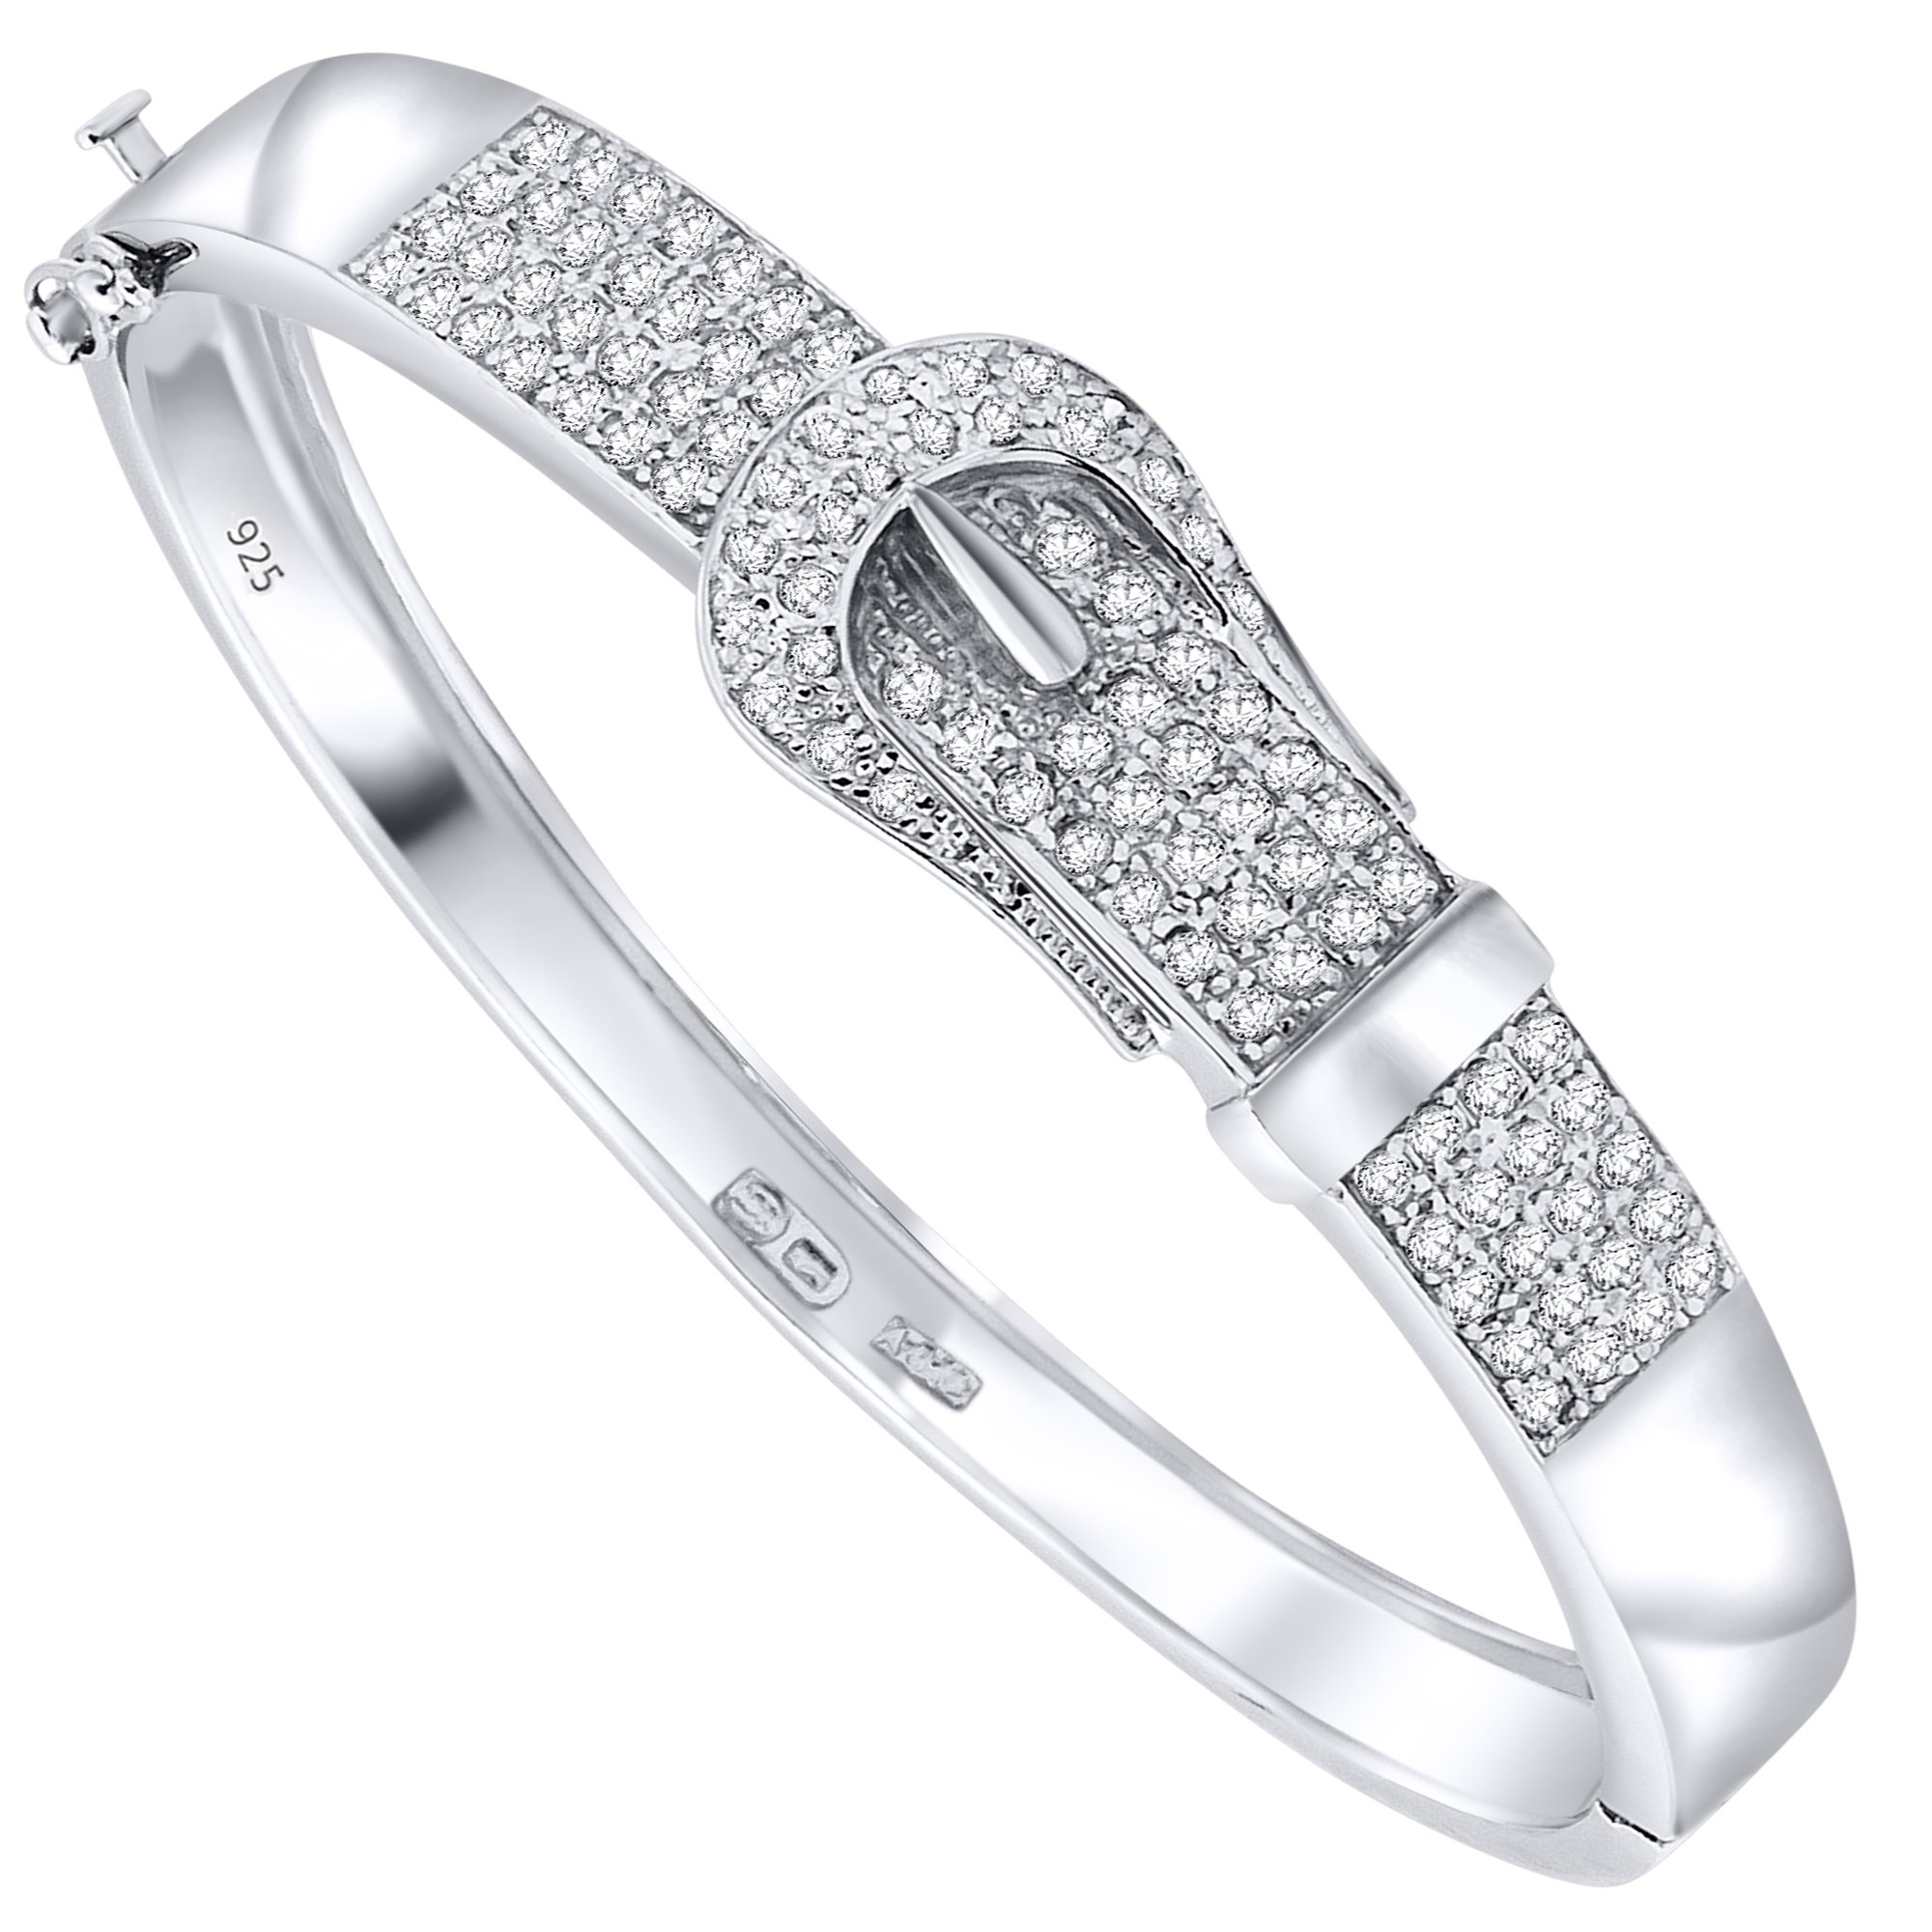 Women's Sterling Silver .925 Sterling Silver Buckle Style Large Bangle Bracelet with Cubic Zirconia Stones, Platinum Plated, 9'' By Sterling Manufacturers